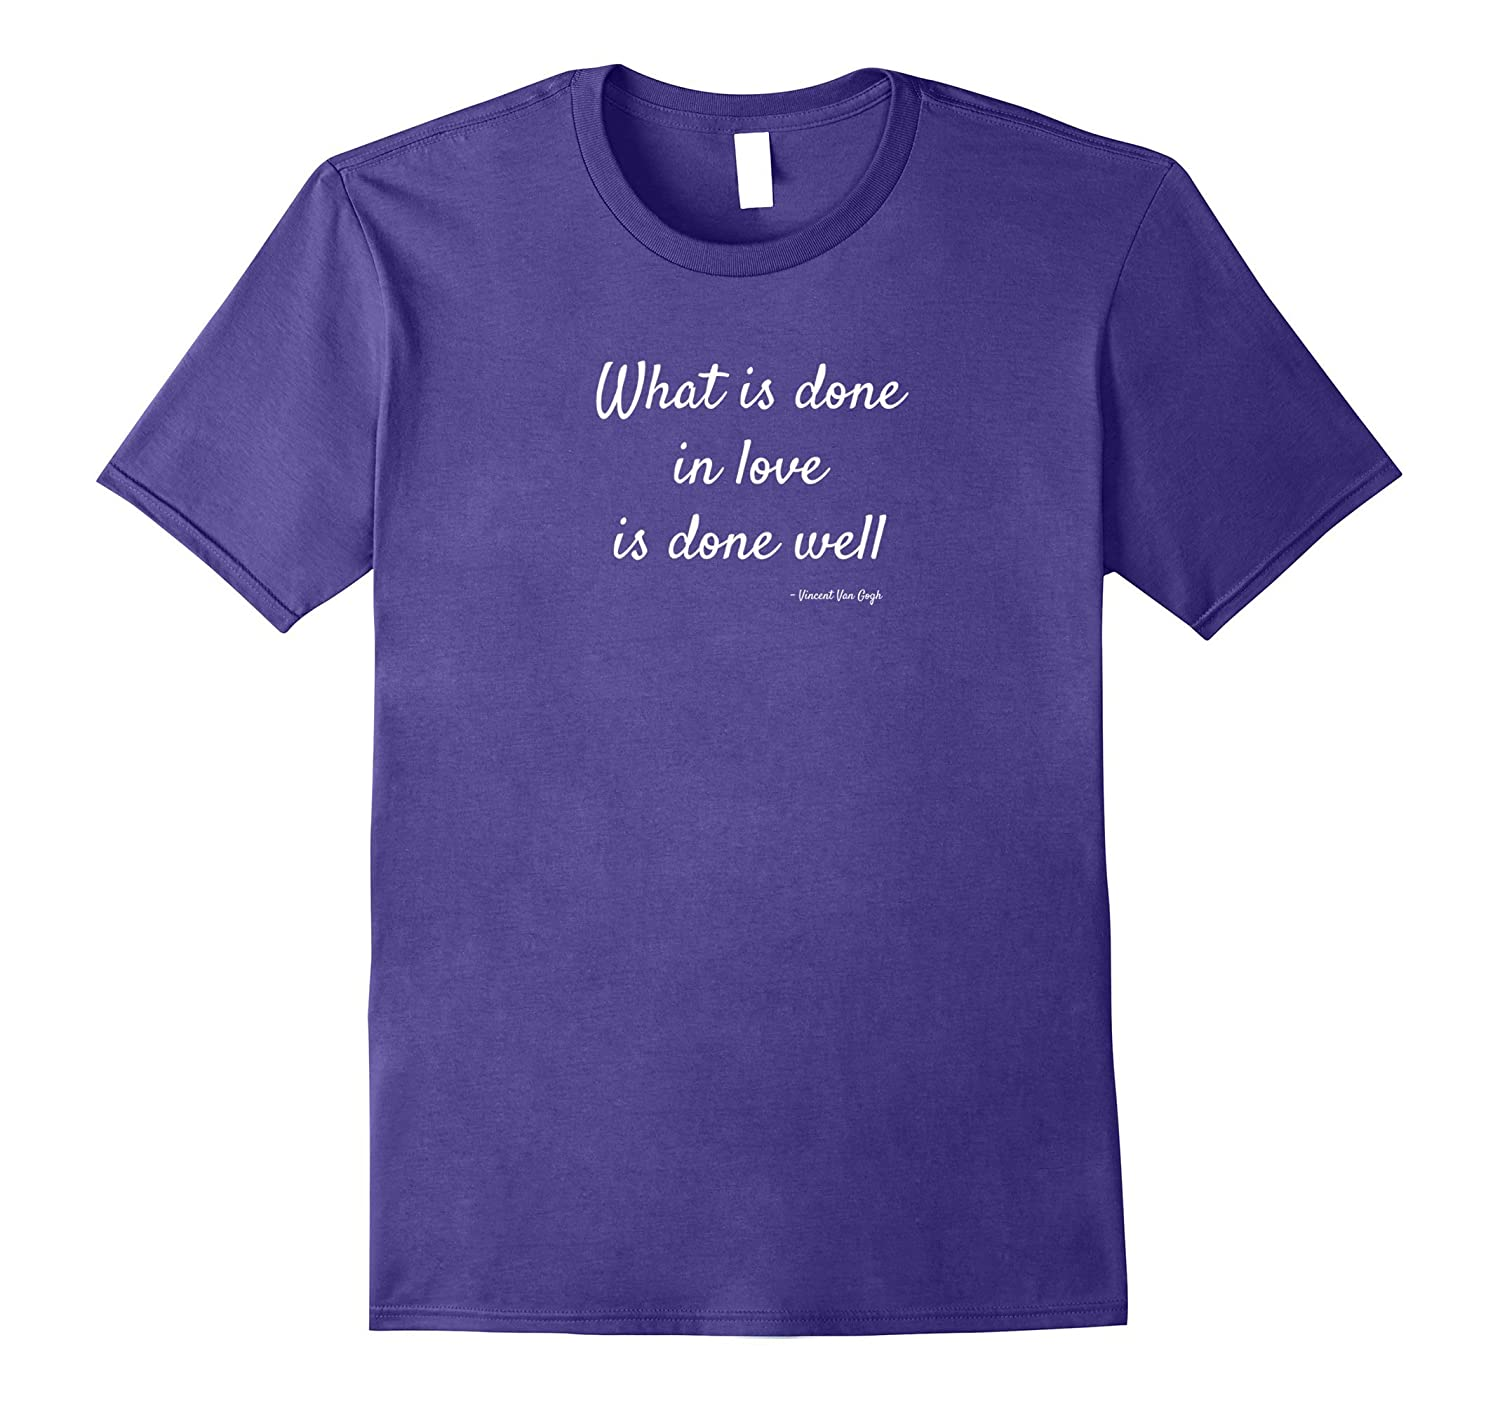 What is done in love - Positive Thinking T-shirt-PL